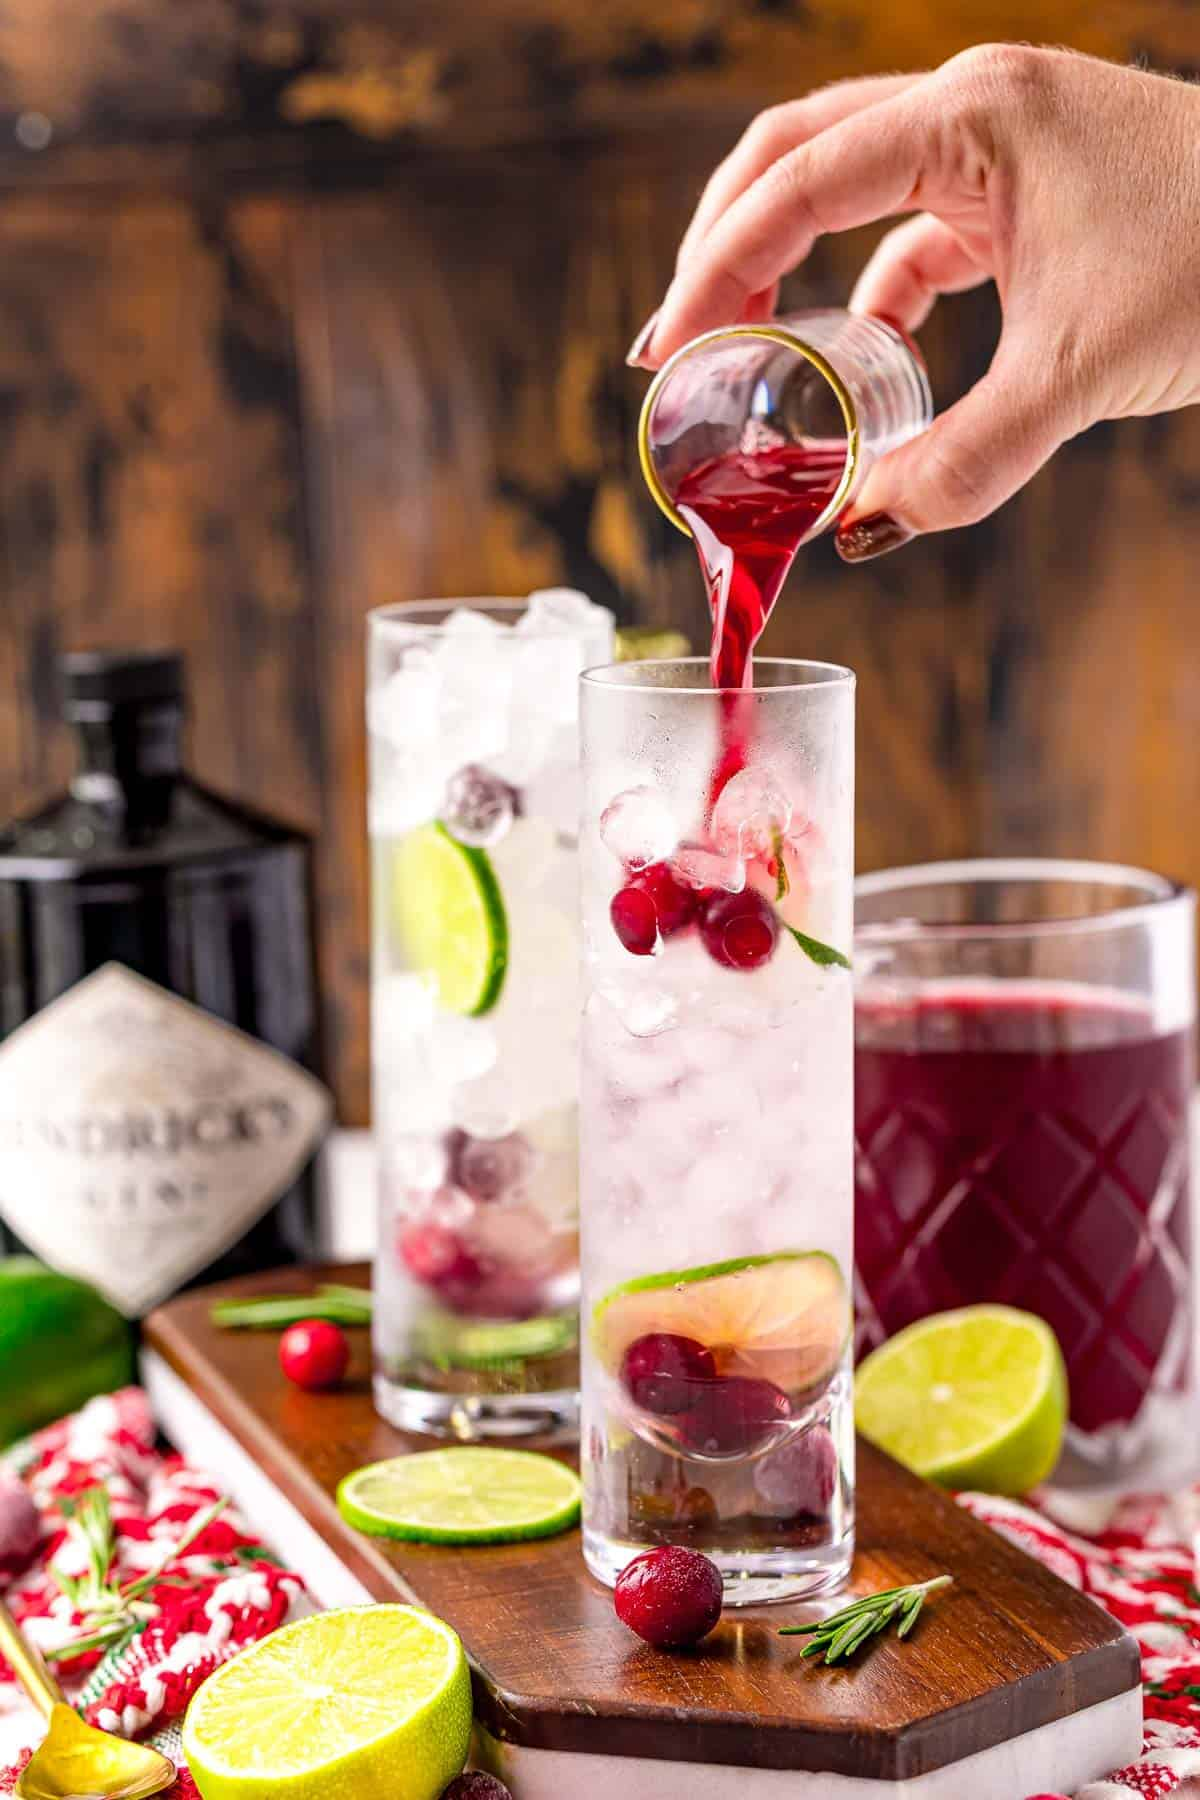 Cranberry being poured into a G&T cocktail.